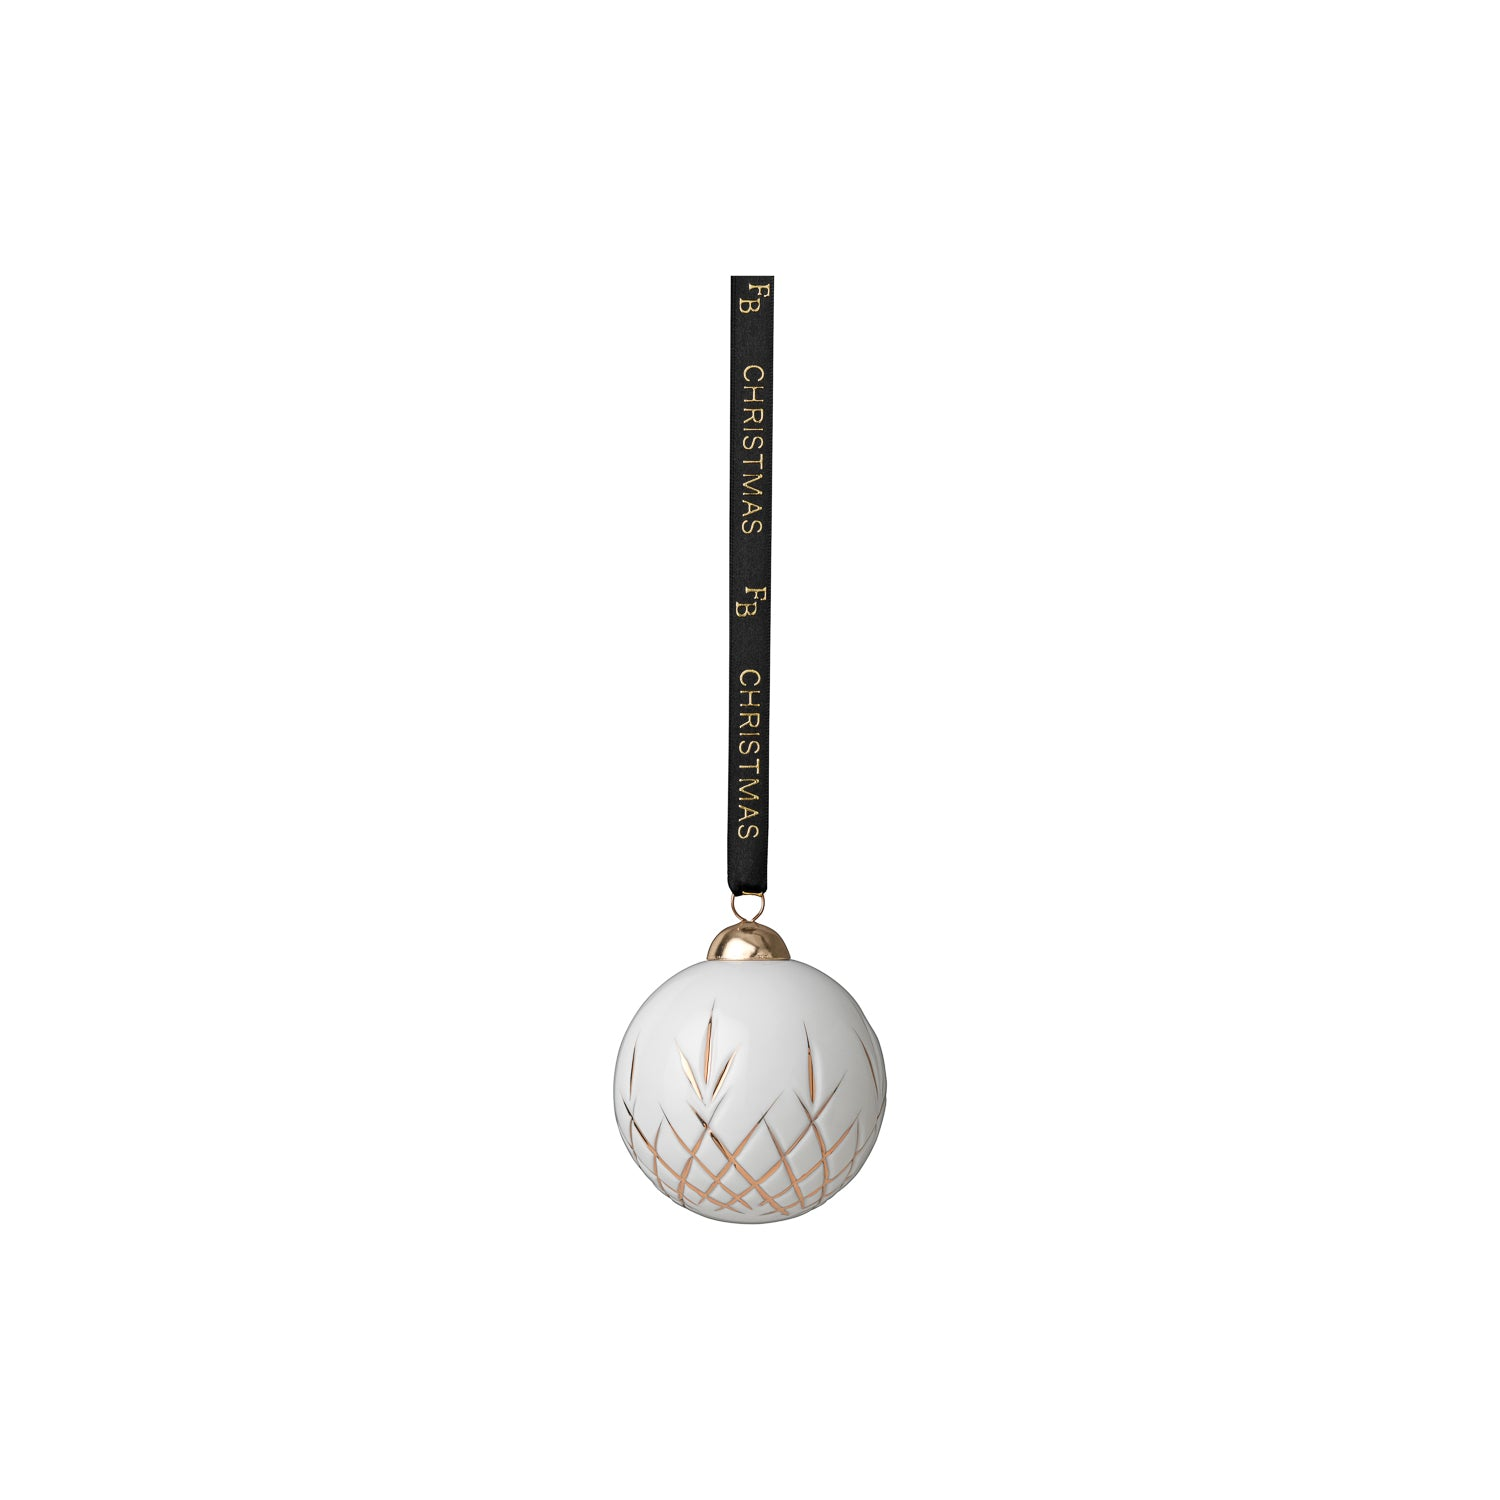 Crispy Porcelain Ball - 1 Piece